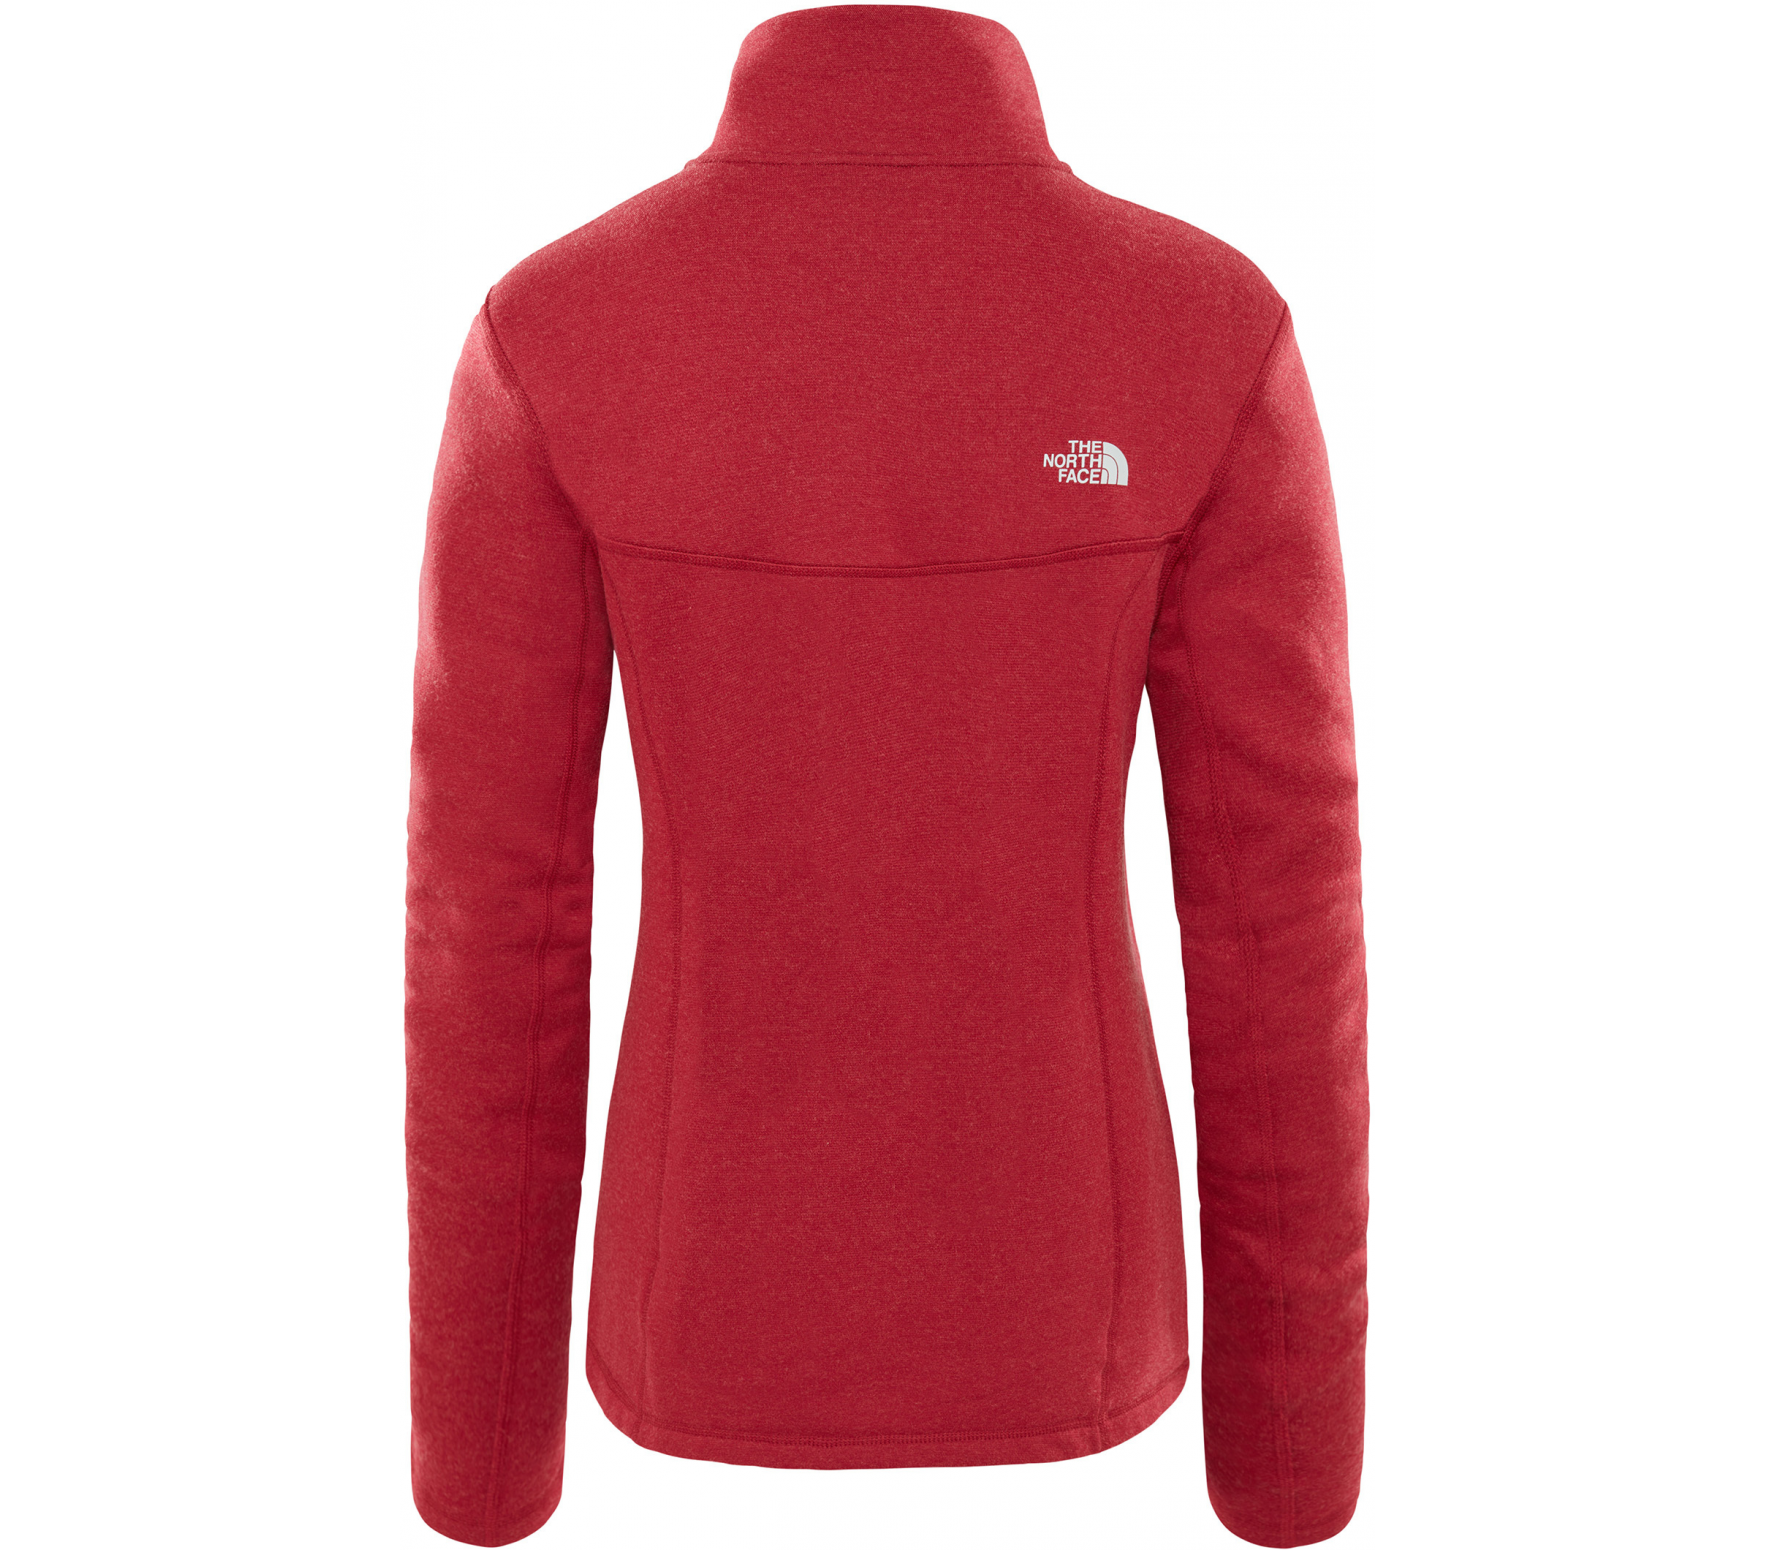 22f6811f05b The North Face - Inlux Wool Full-Zip Dames jas (rood) online kopen ...